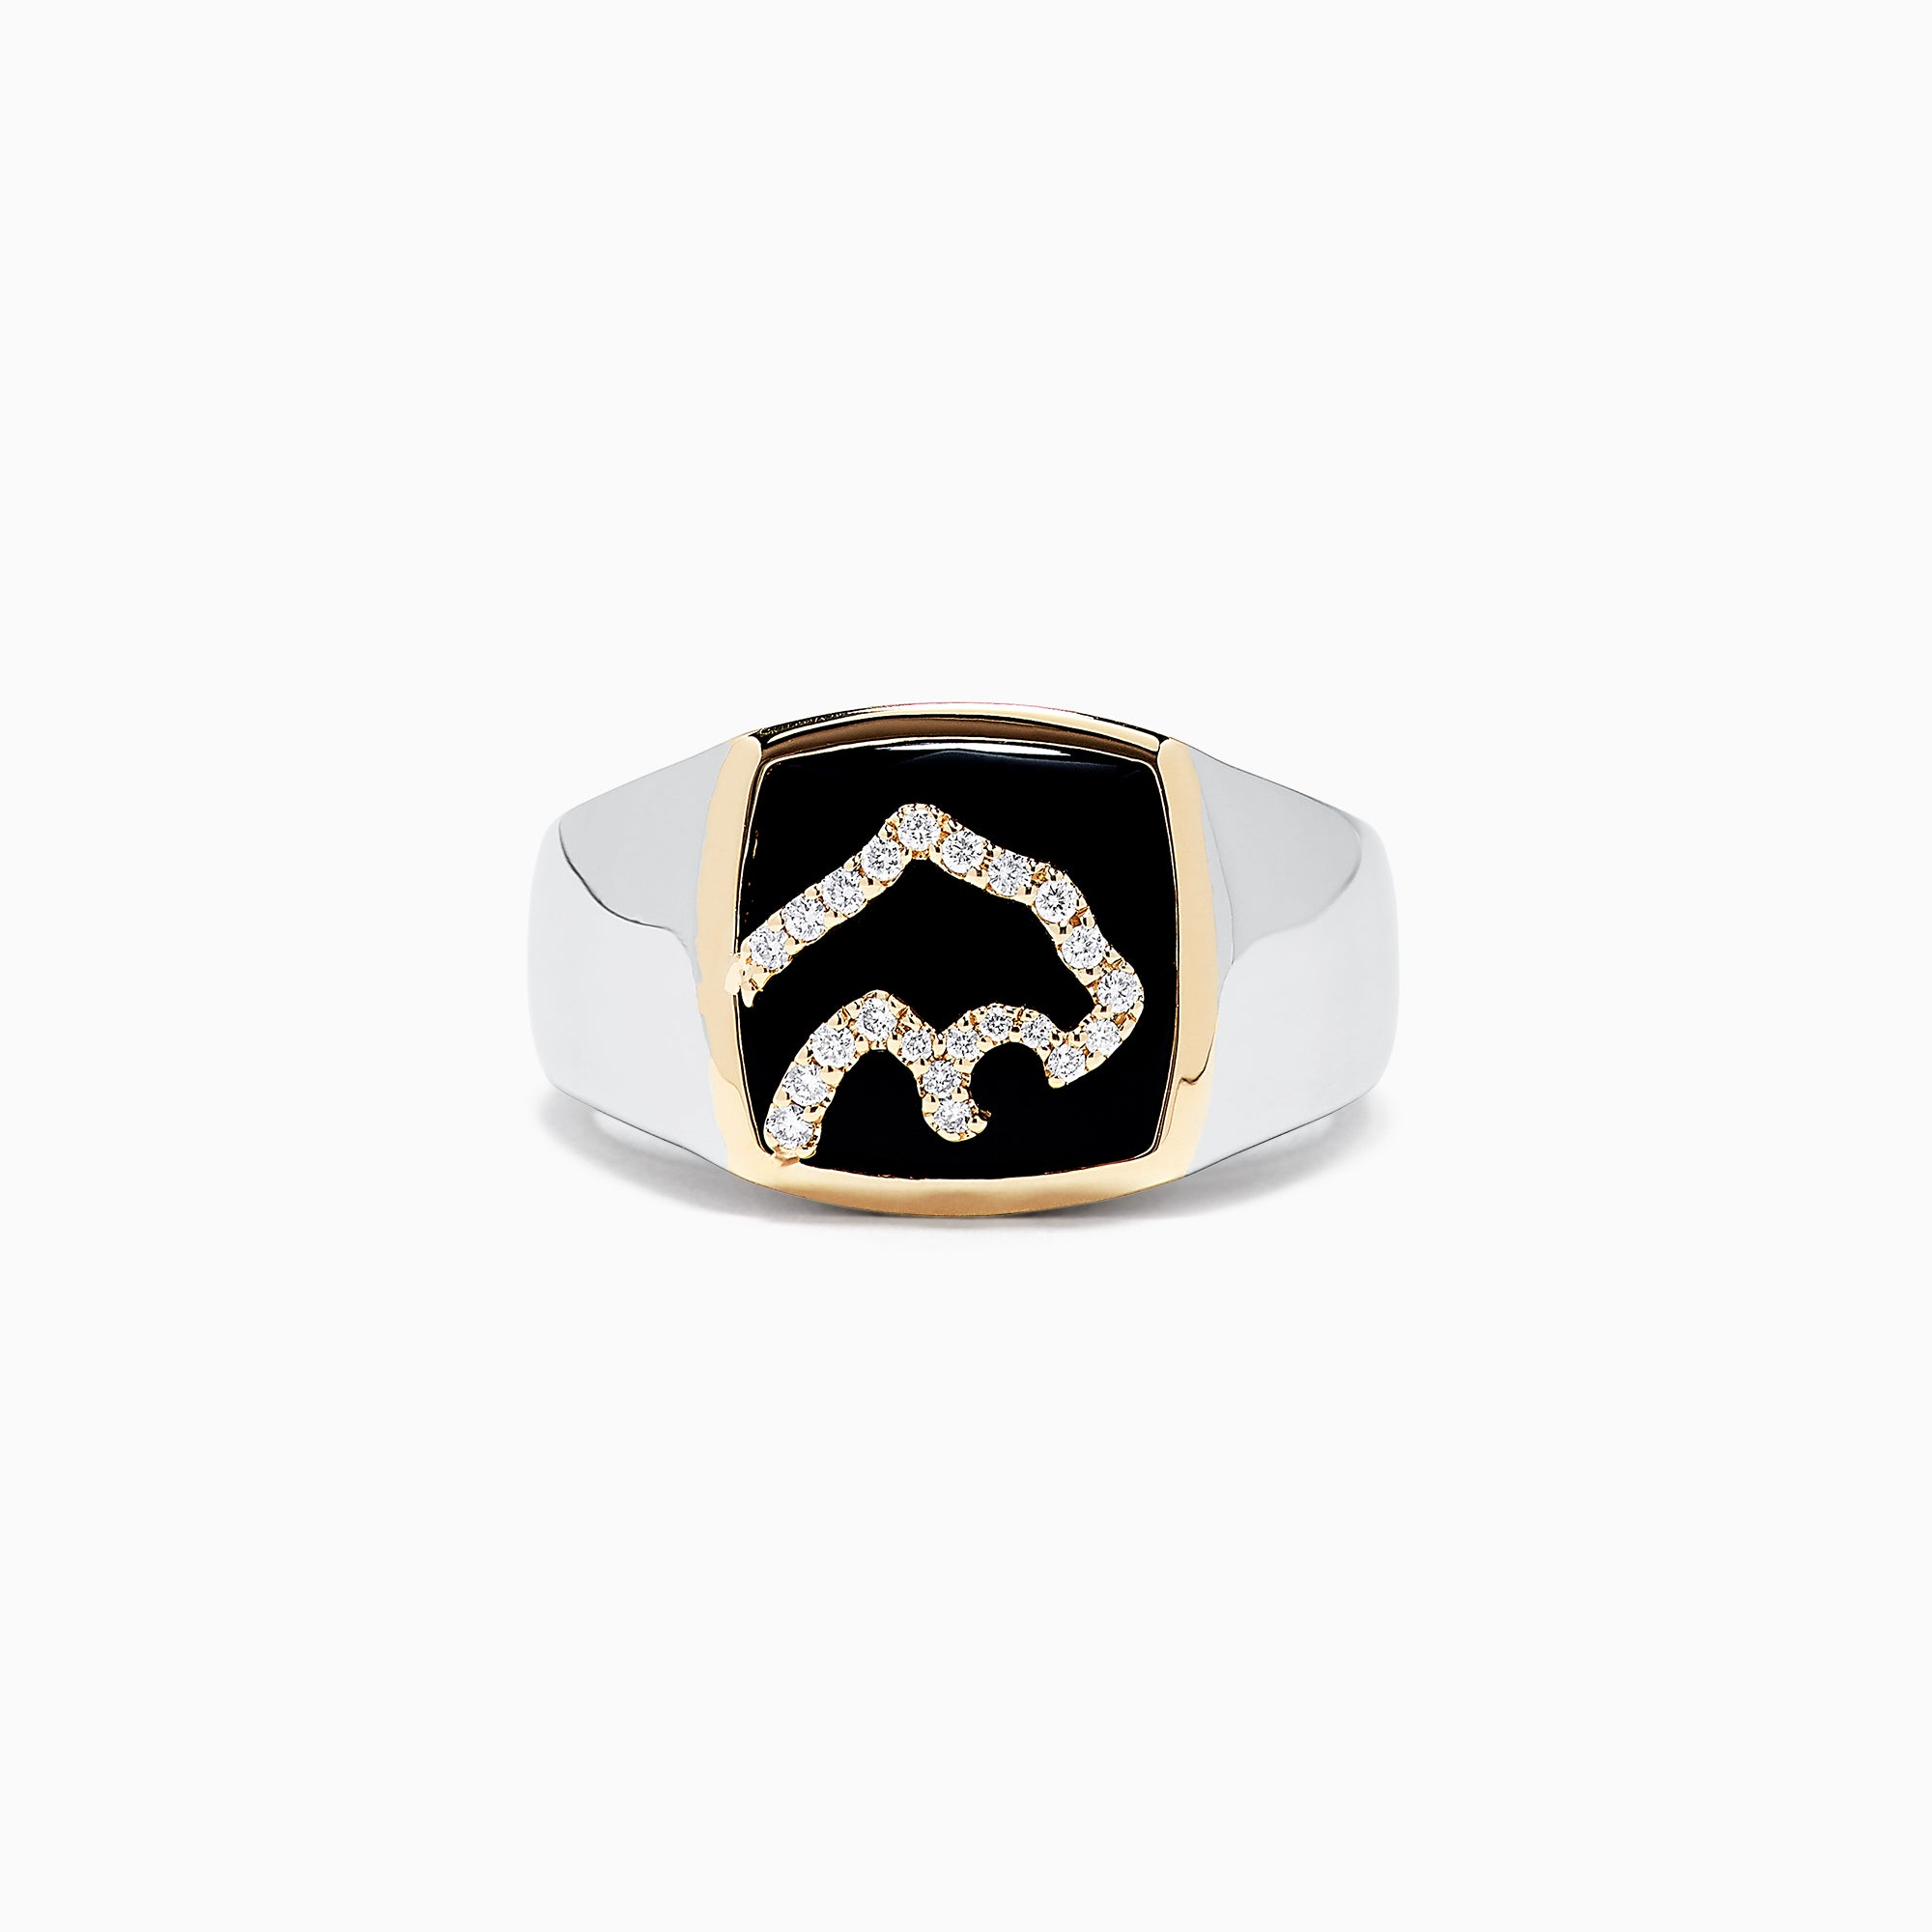 Effy Men's 14K Two-Tone Gold Black Agate and Diamond Panther Ring, 0.14 TCW